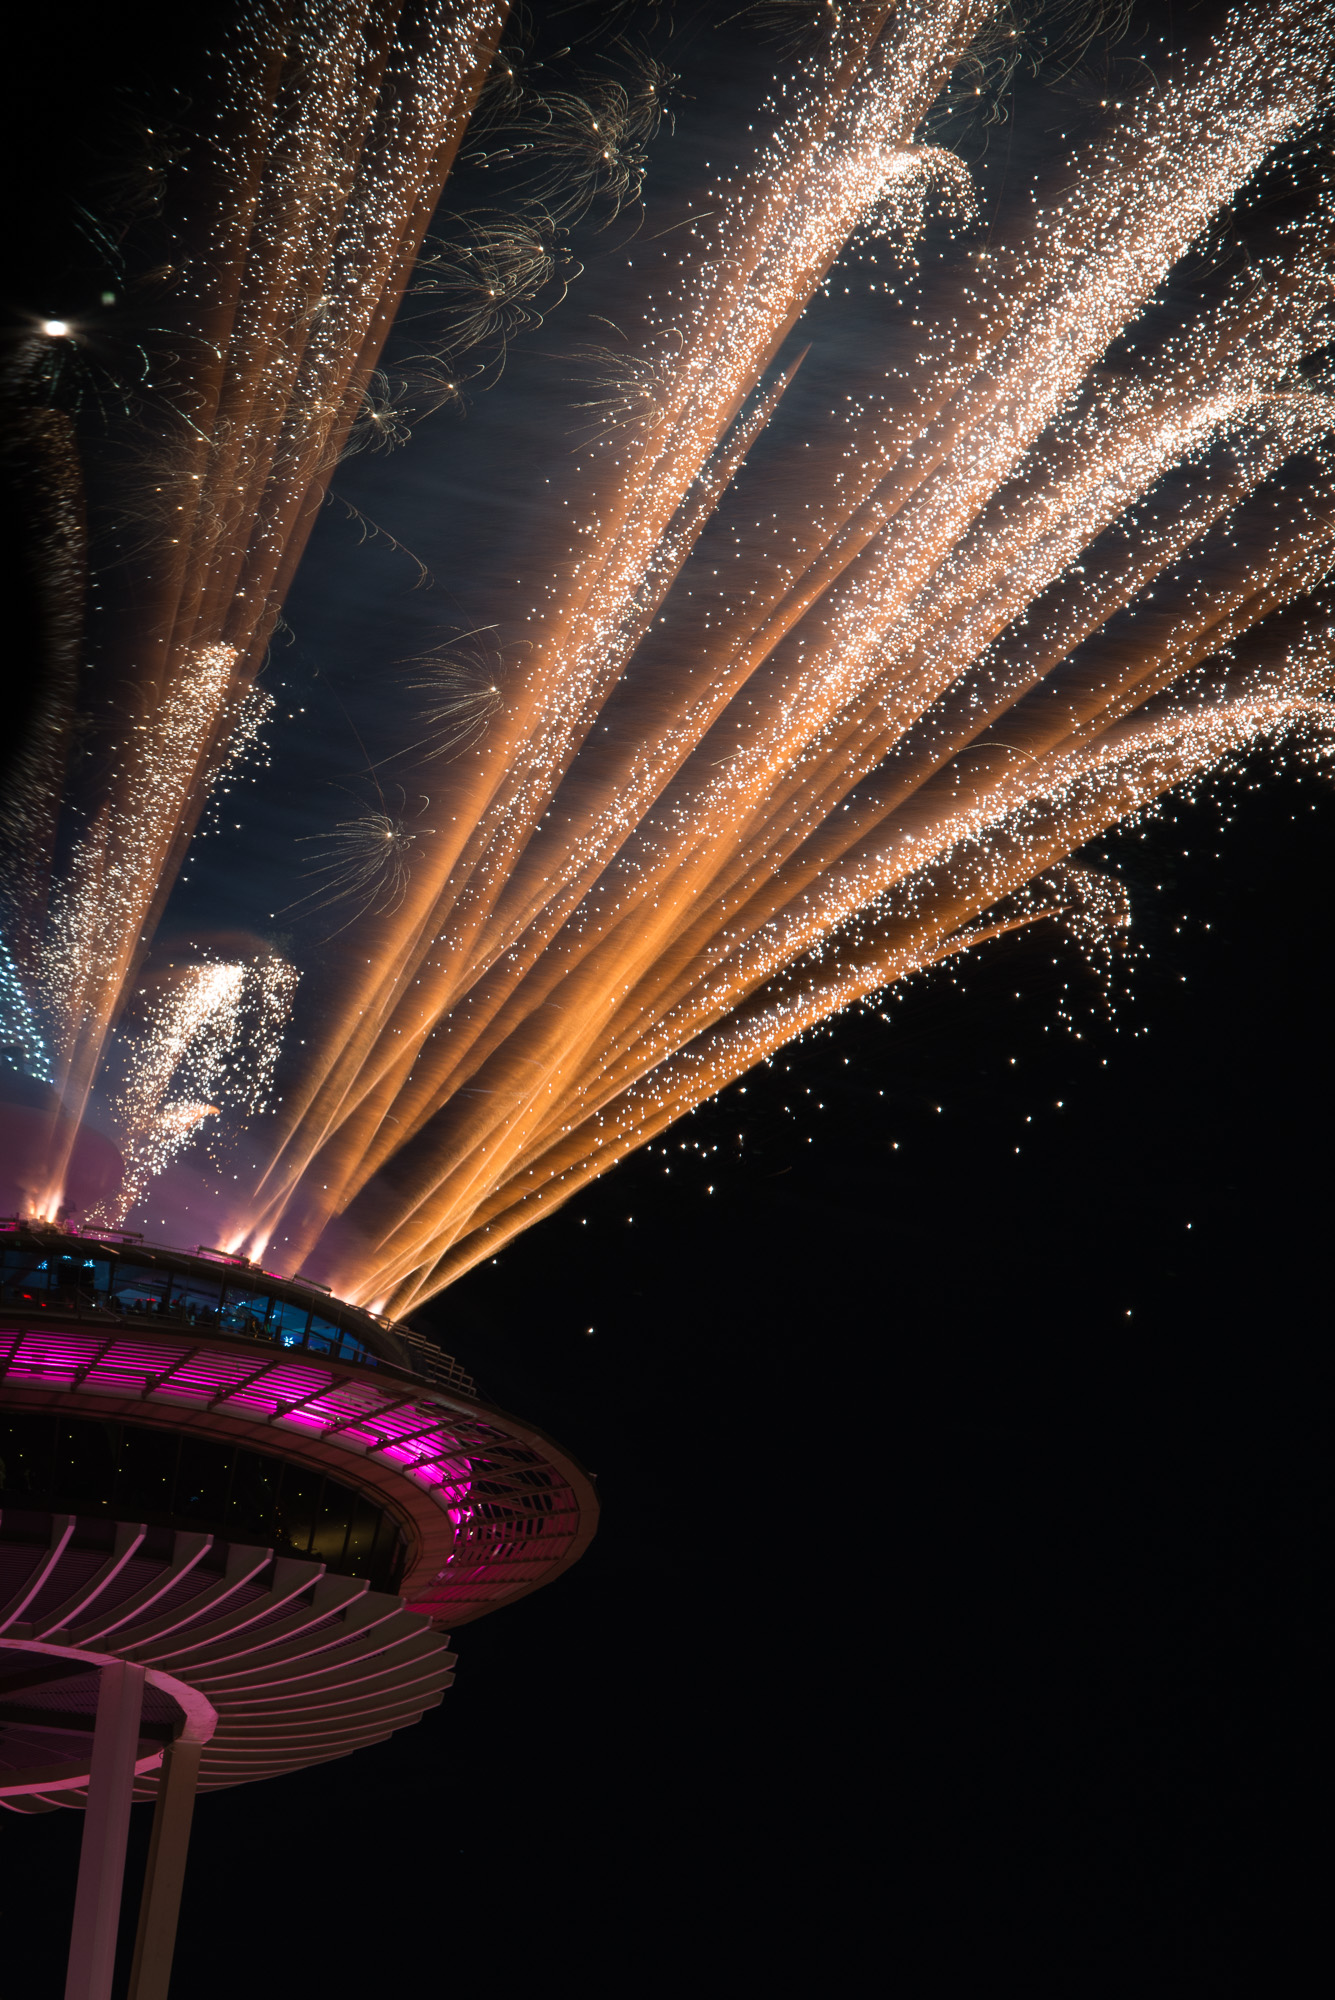 2015 New Years Eve fireworks over the Space Needle